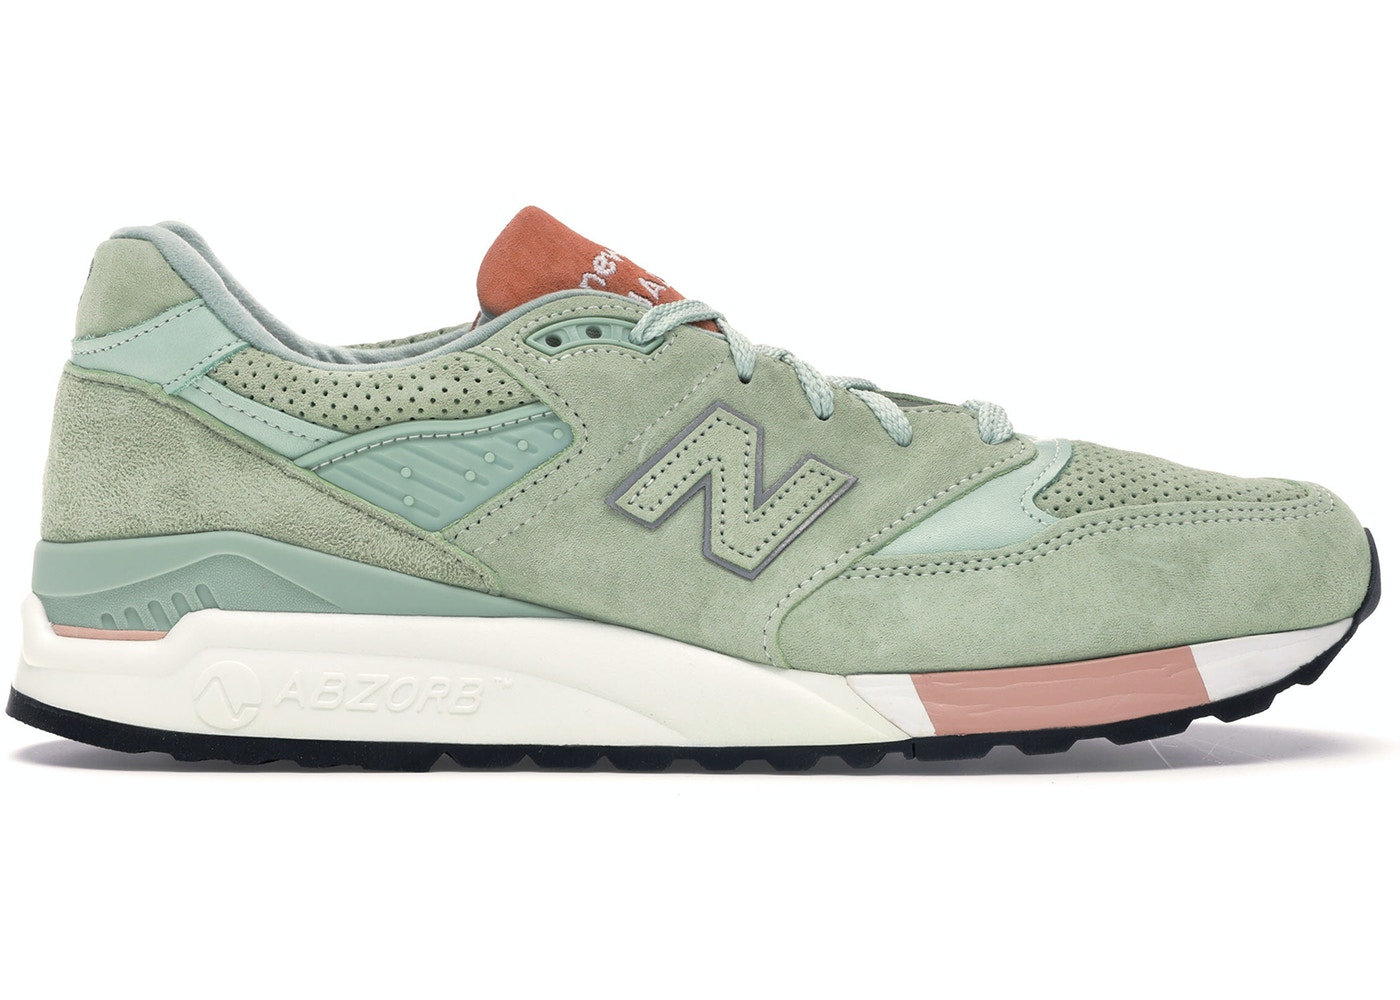 new styles 6d8fd 7deb1 New Balance 998 Concepts x Tannery